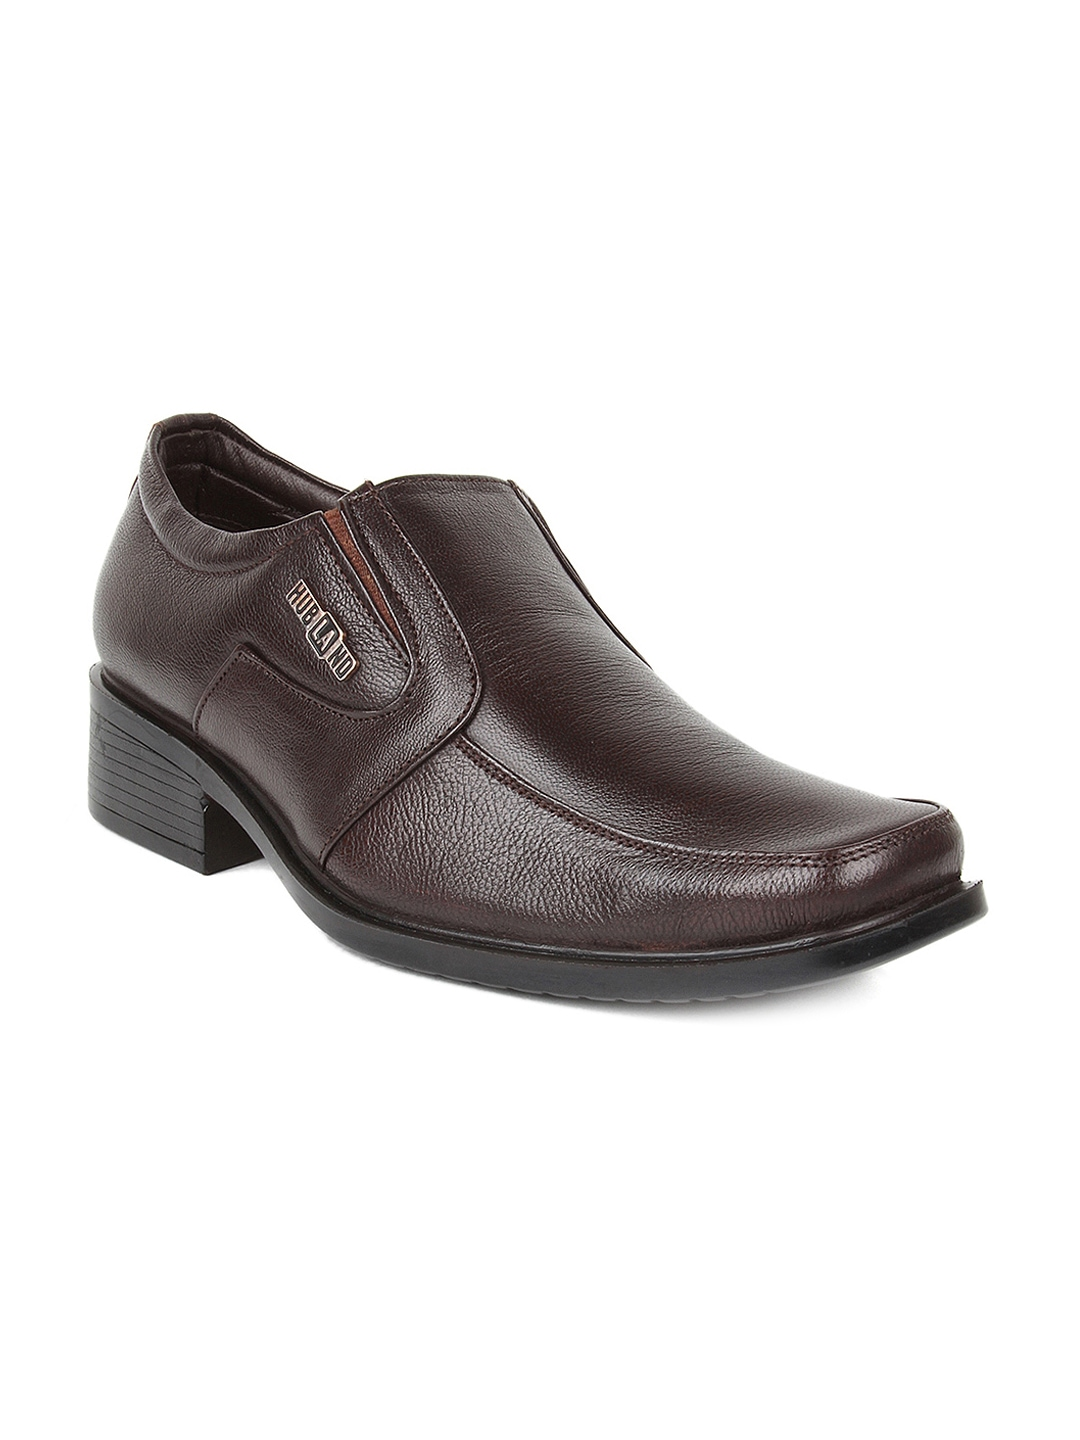 myntra hubland brown leather formal shoes 686836 buy